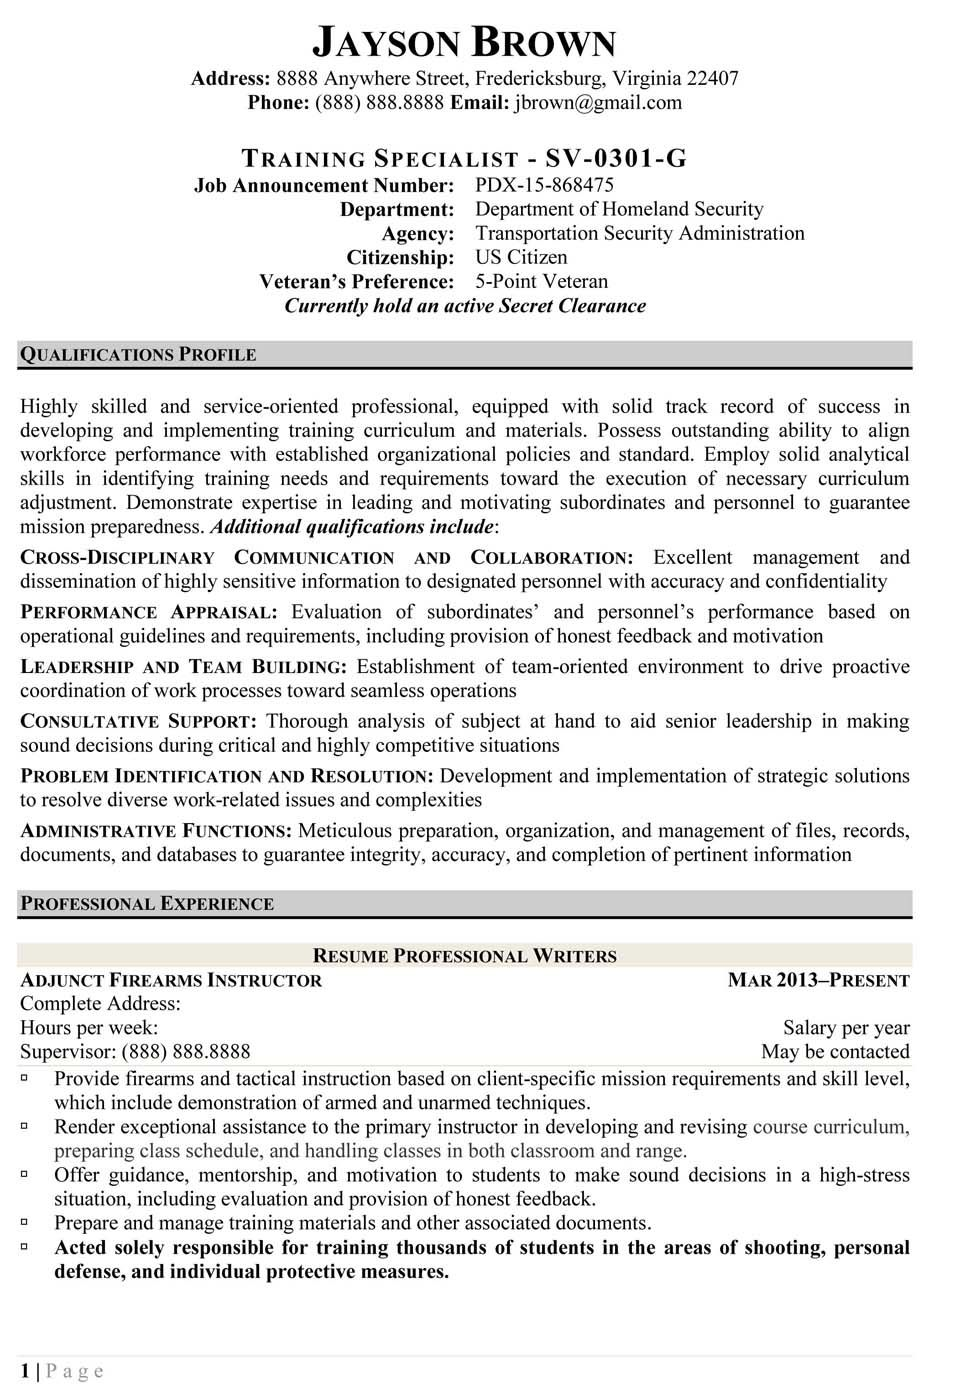 best executive resume writers top cv support synonym office experience basketball coach Resume Best Resume Writers 2020